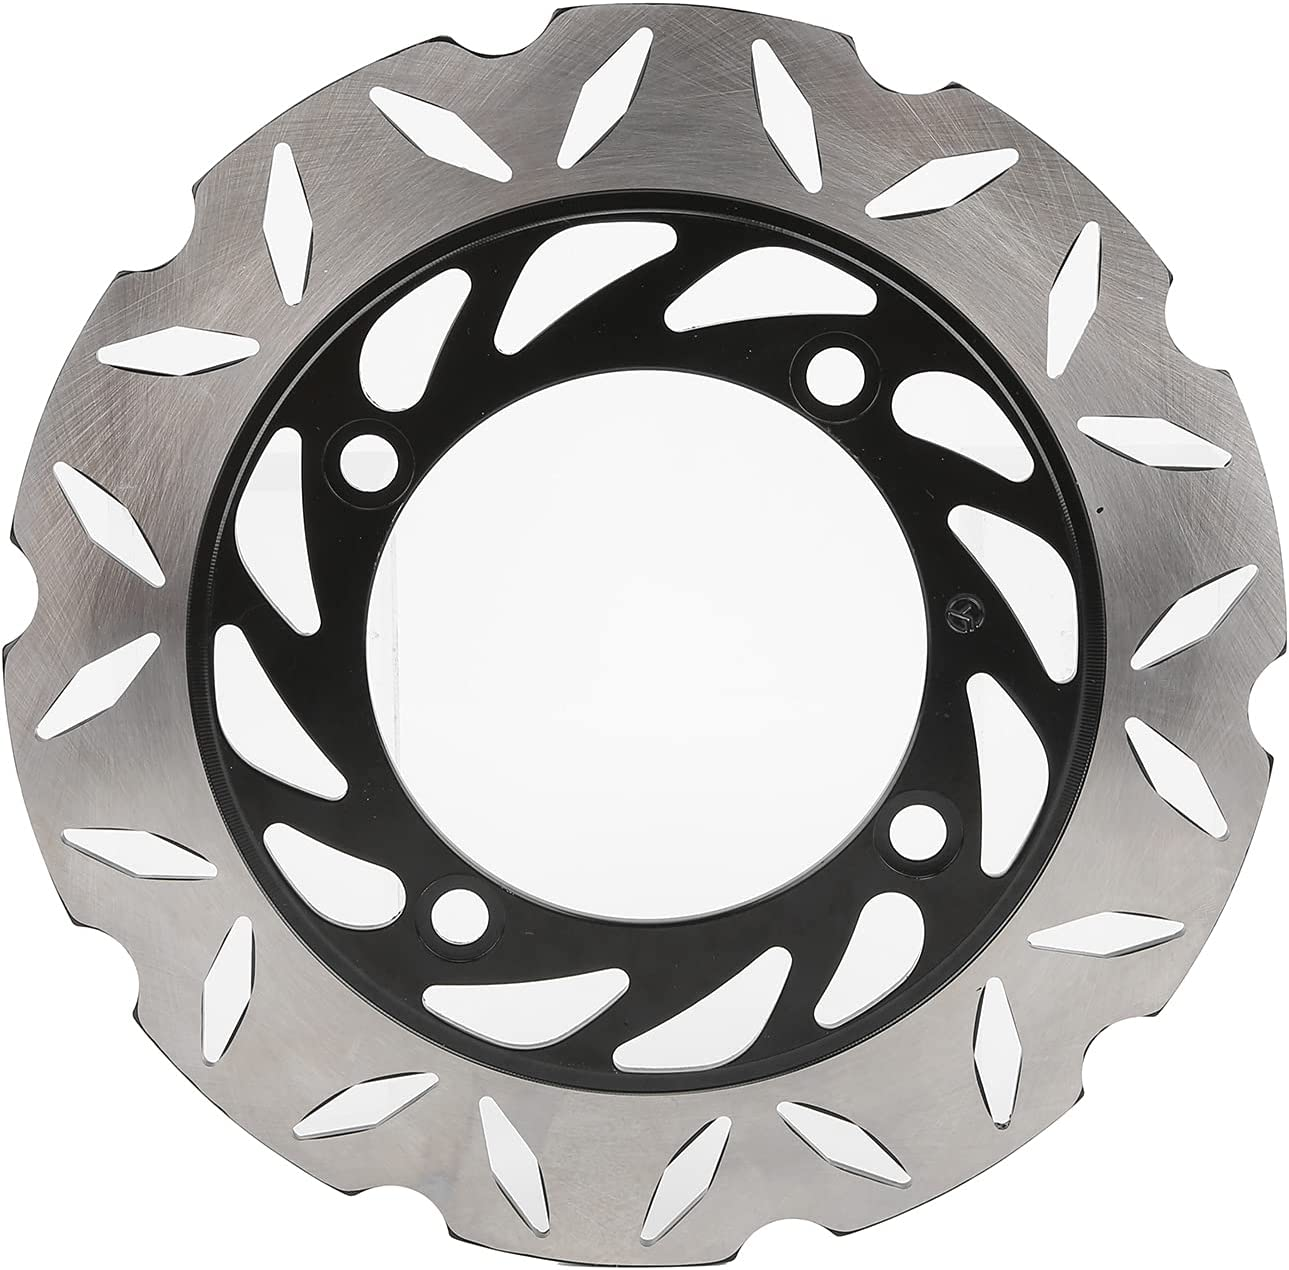 Max 86% OFF Brake Rotor 240mm 9.45in Motorcycle Disc wholesale Rear Modif